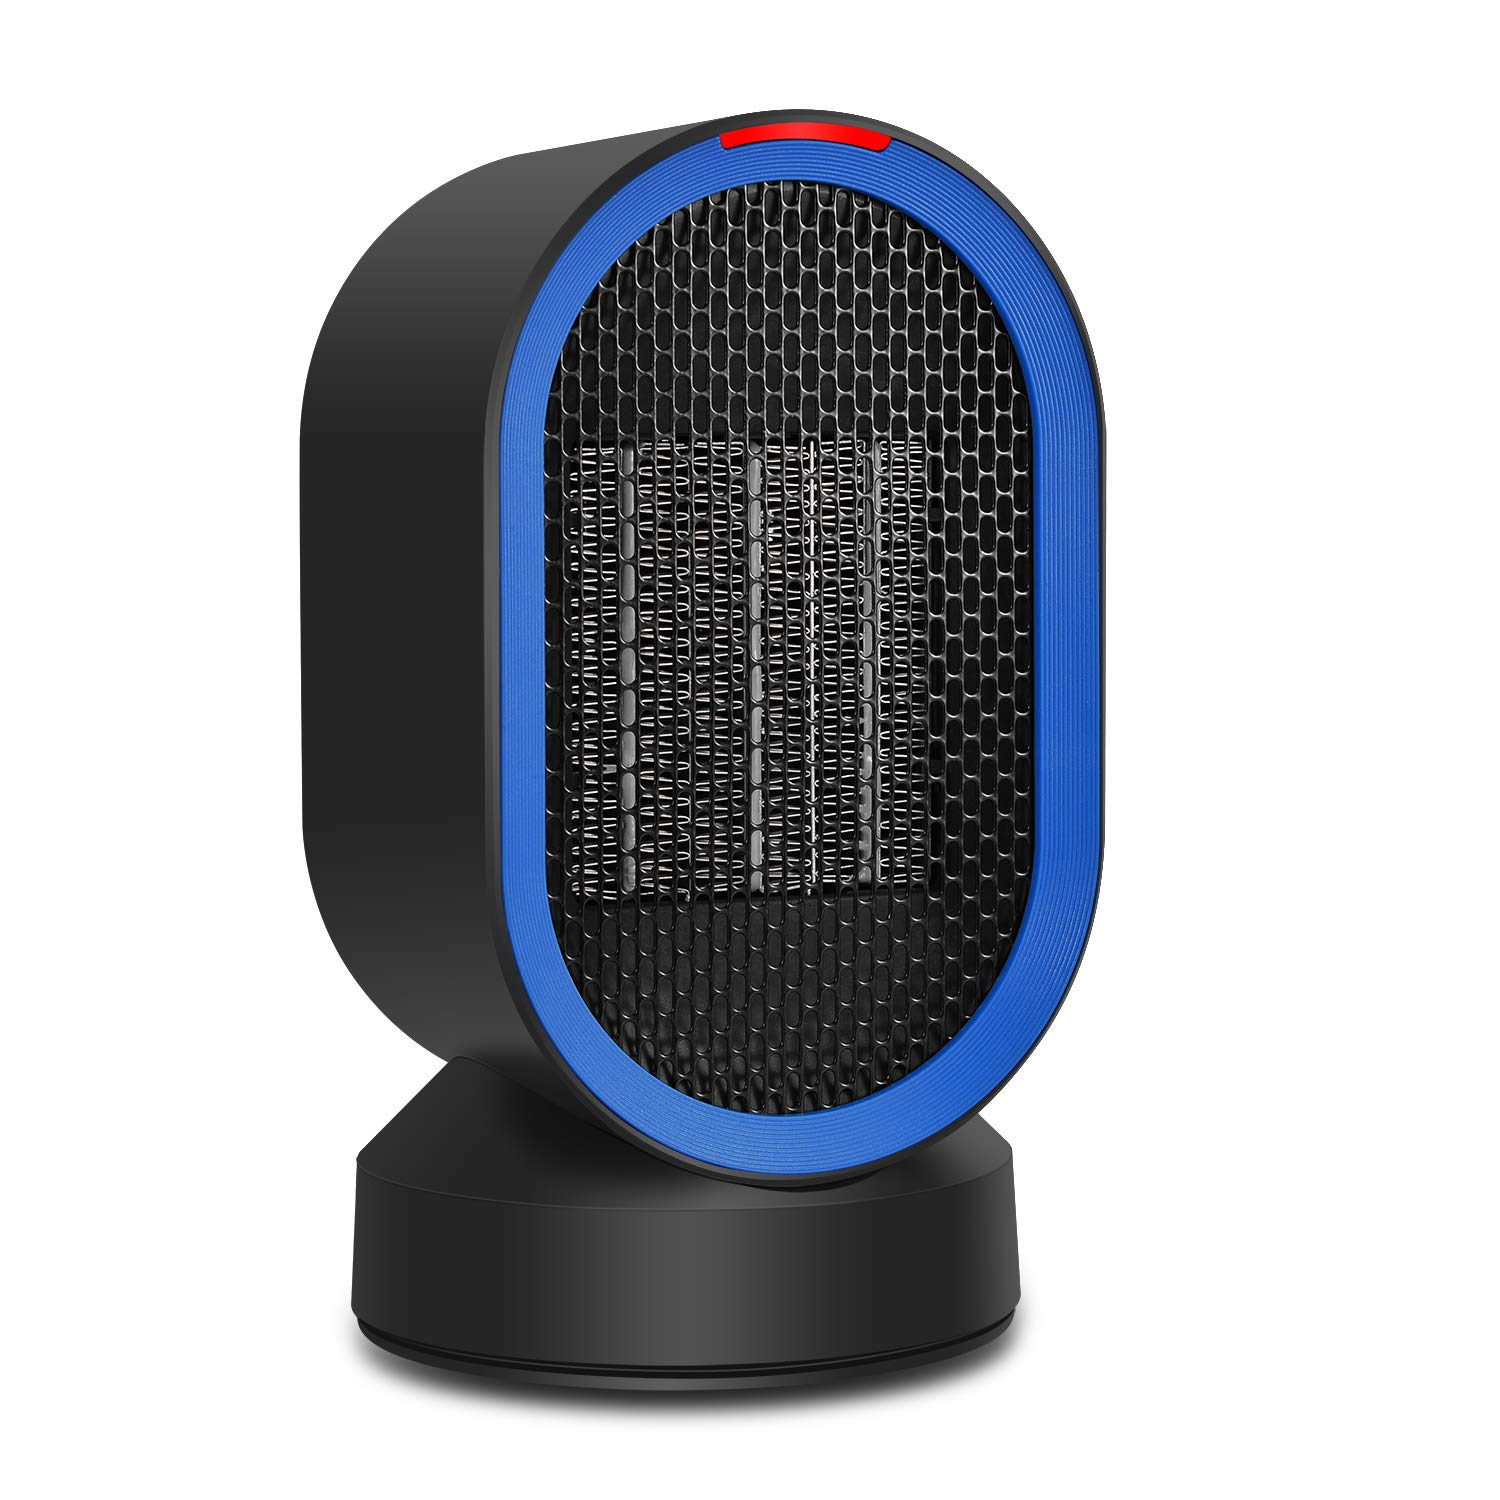 Personal Space Heater Fan Portable Ceramic Desktop Oscillating Electric Heater for Home Office Desktop Living Room Bedroom Night Stand ADDSMILE